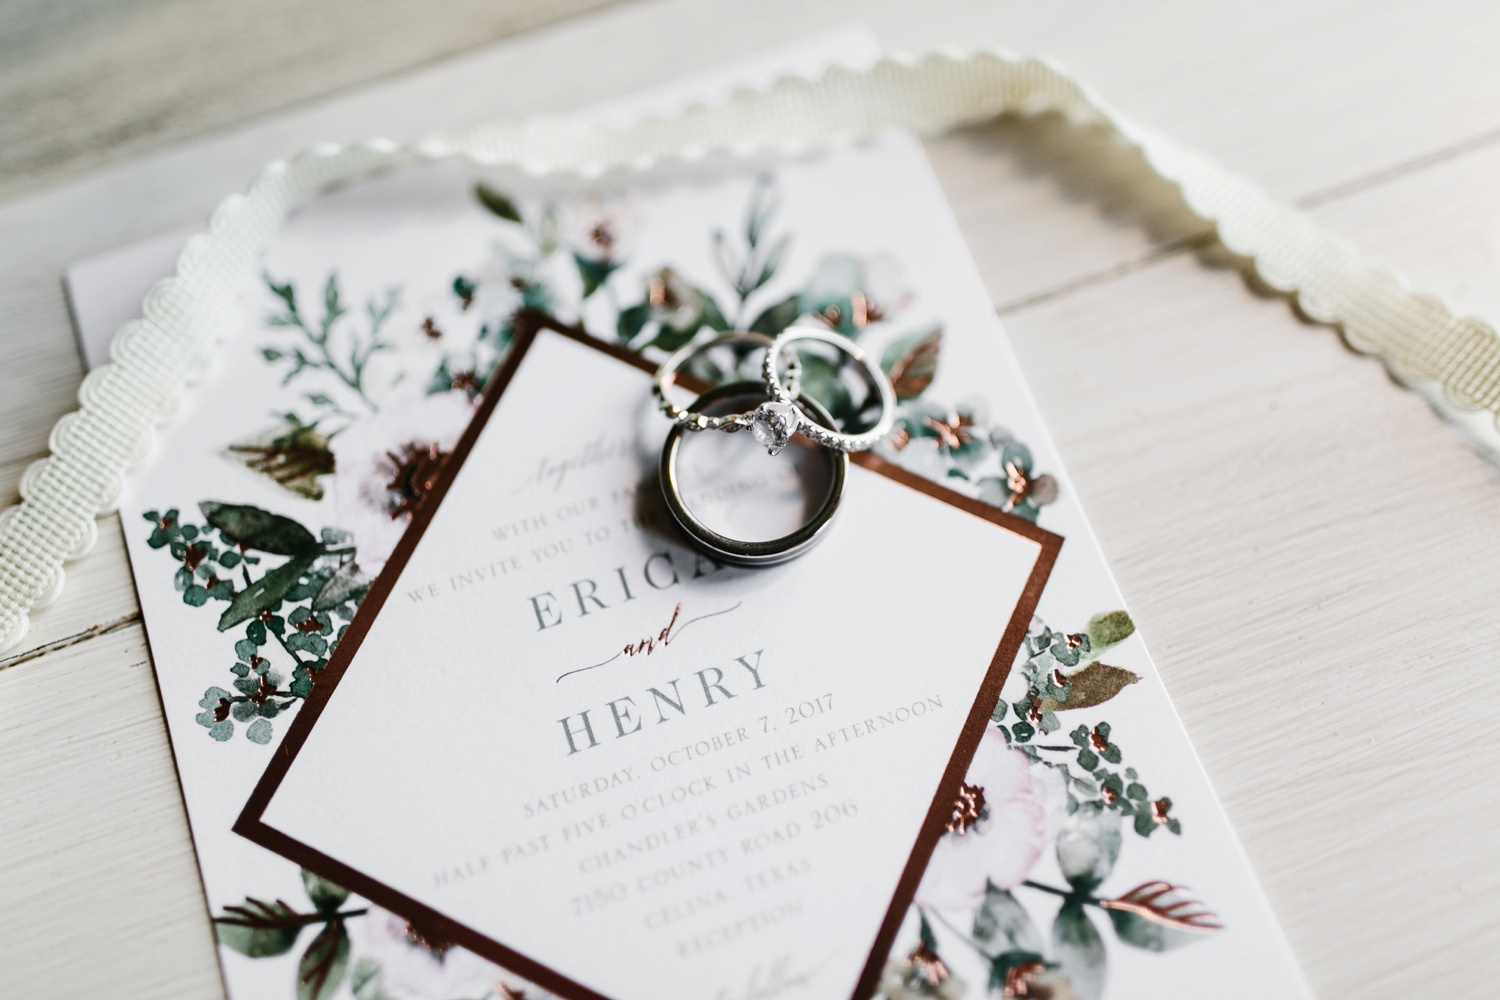 Erica + Henry | a bohemian inspired wedding at Chandlers Gardens in Salina, TX by North Texas Wedding Photographer Rachel Meagan Photography 003